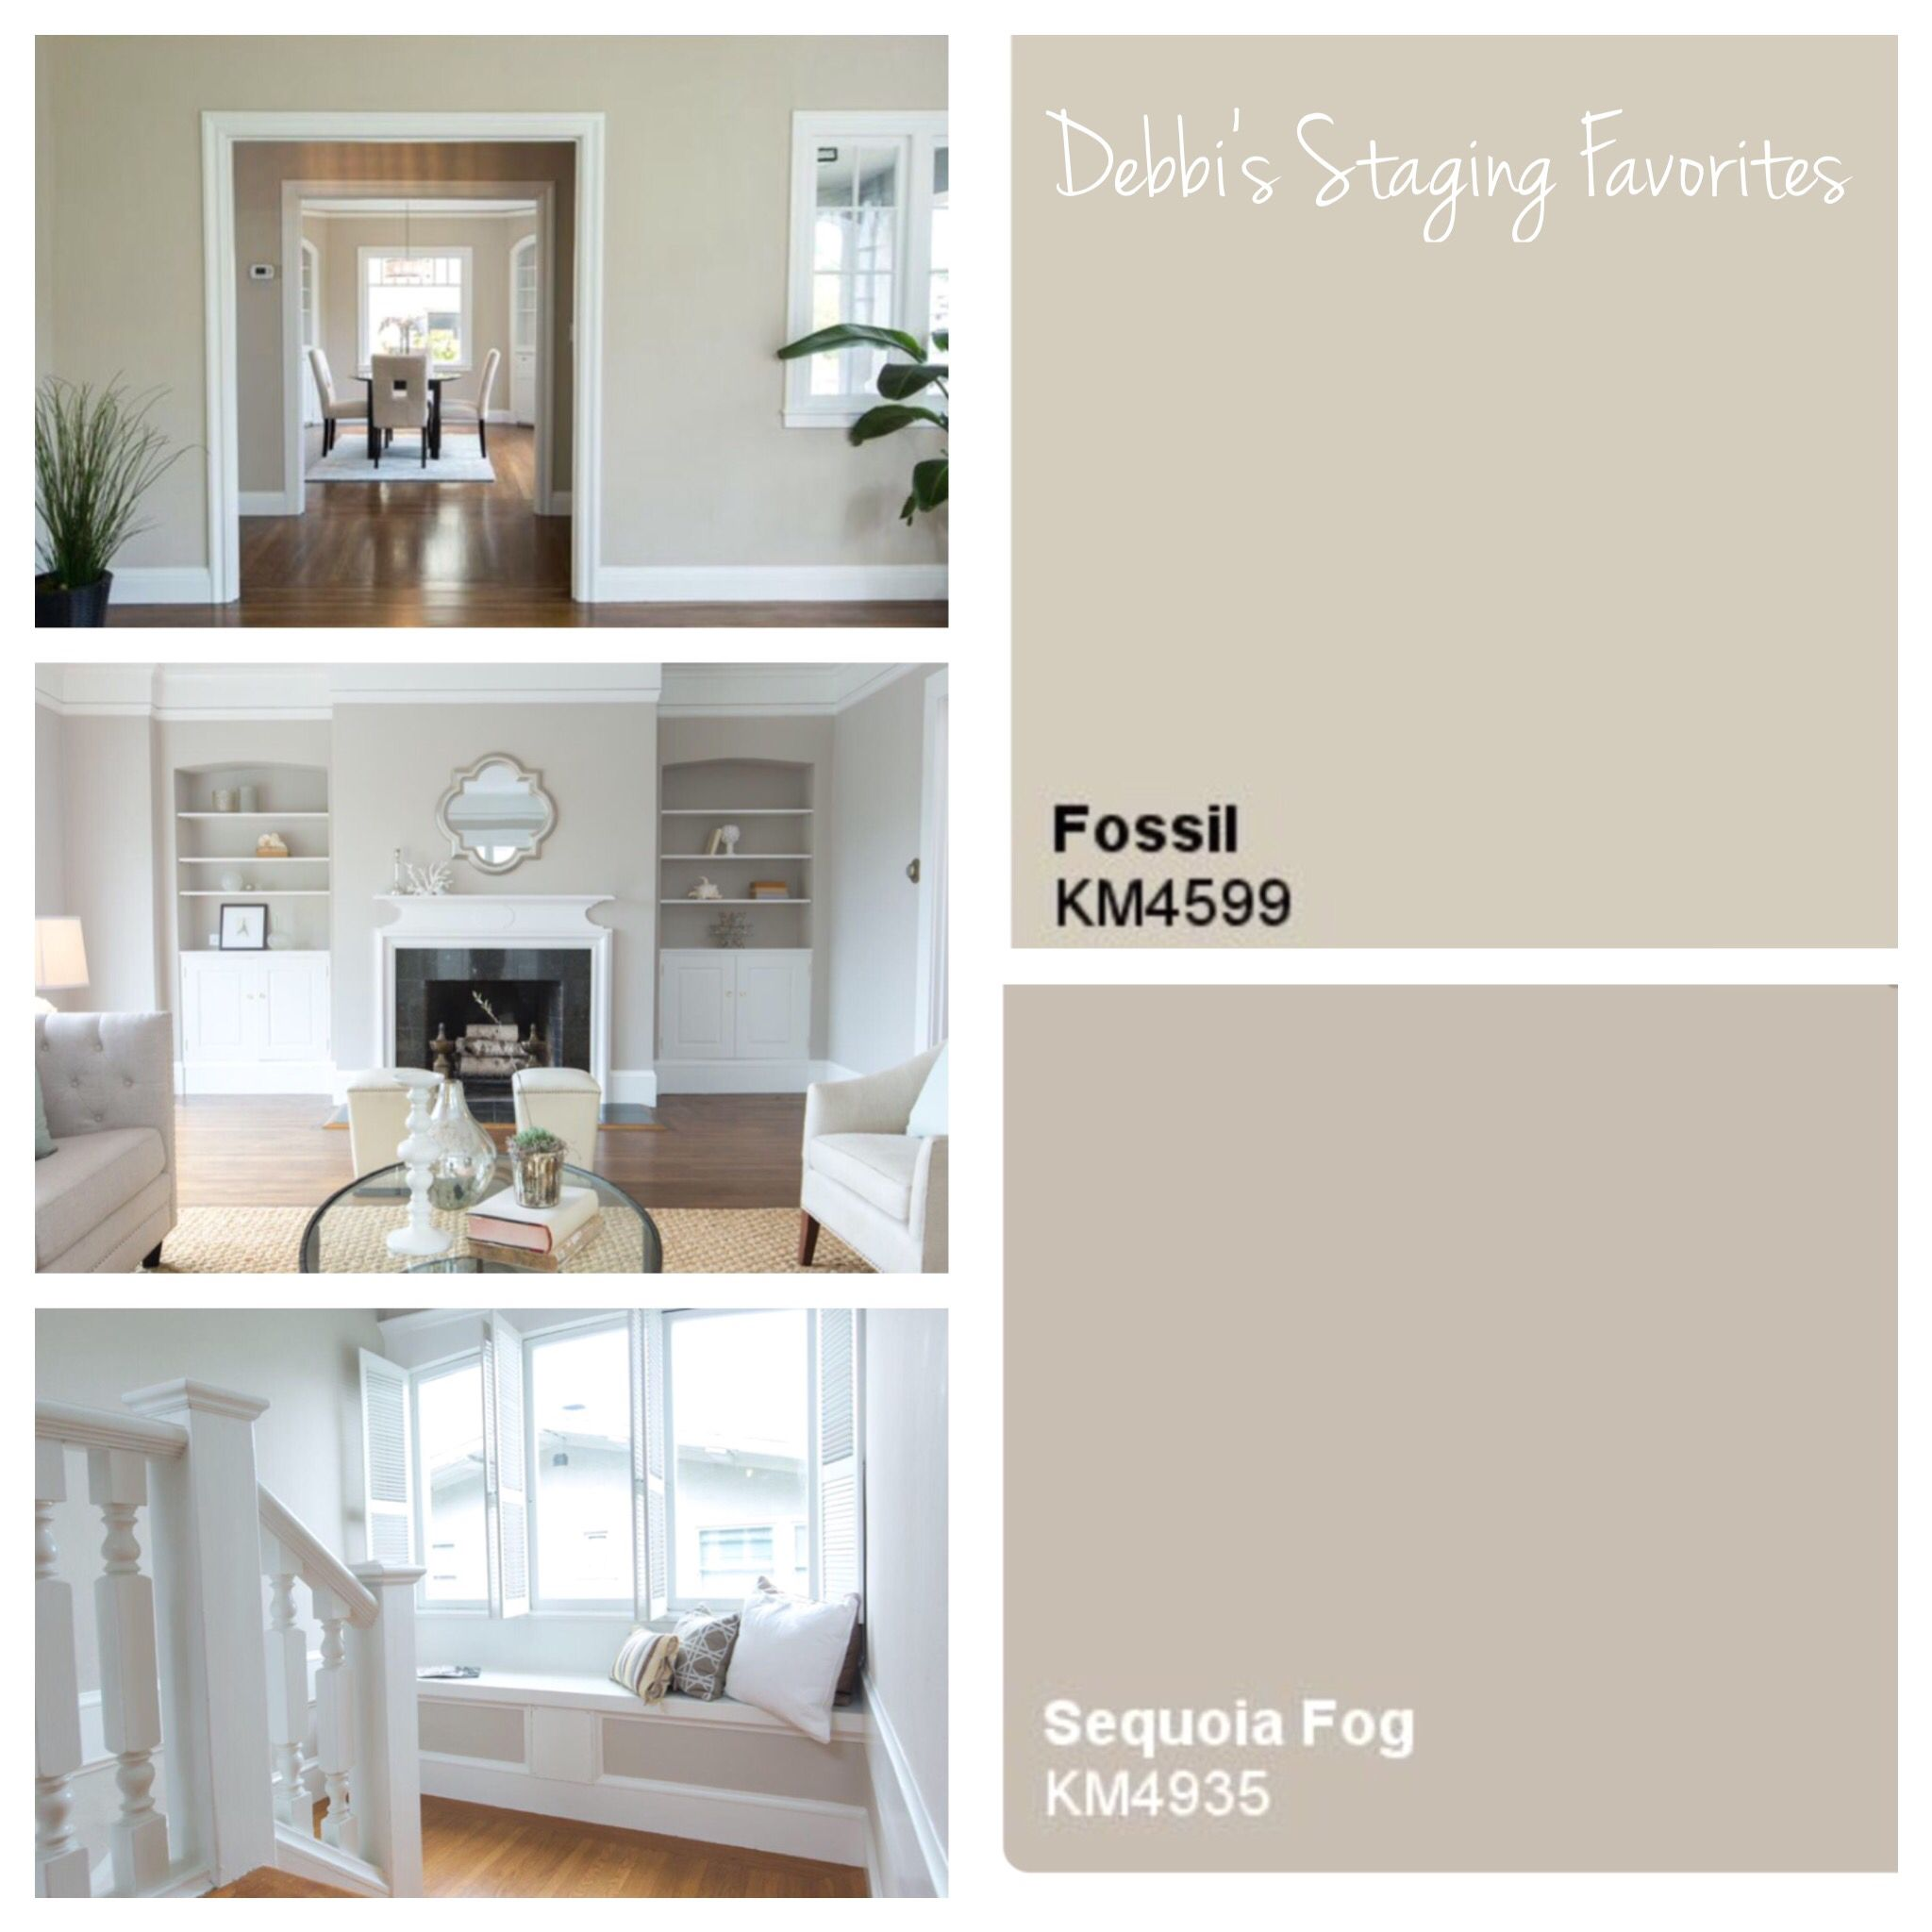 Interior paint colors frequently used in the homes we sell Kelly